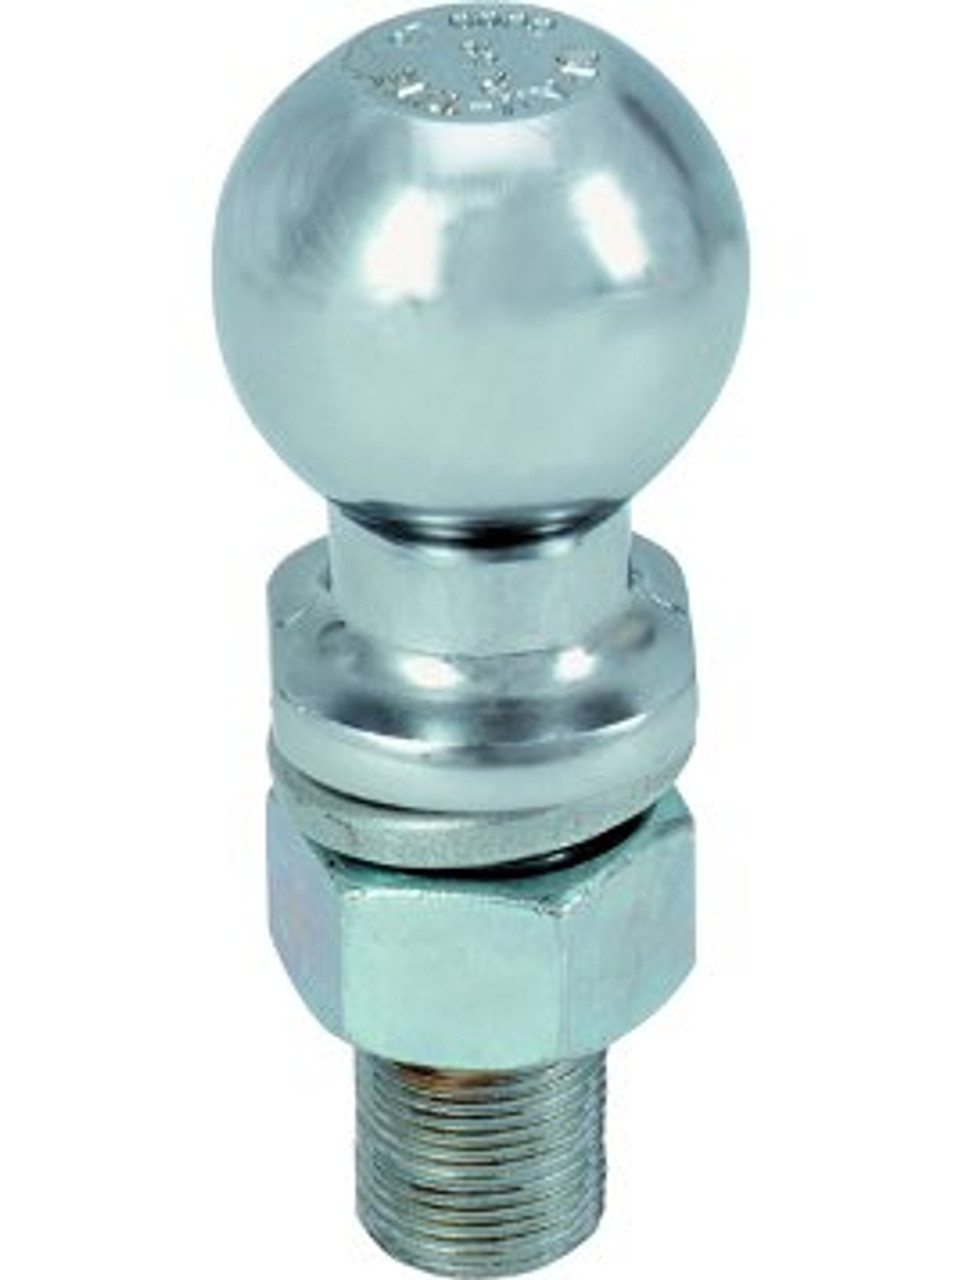 "4121 --- 1-7/8"" Hitch Ball with extra long shank, 2,000 lb Capacity, Zinc Finish"